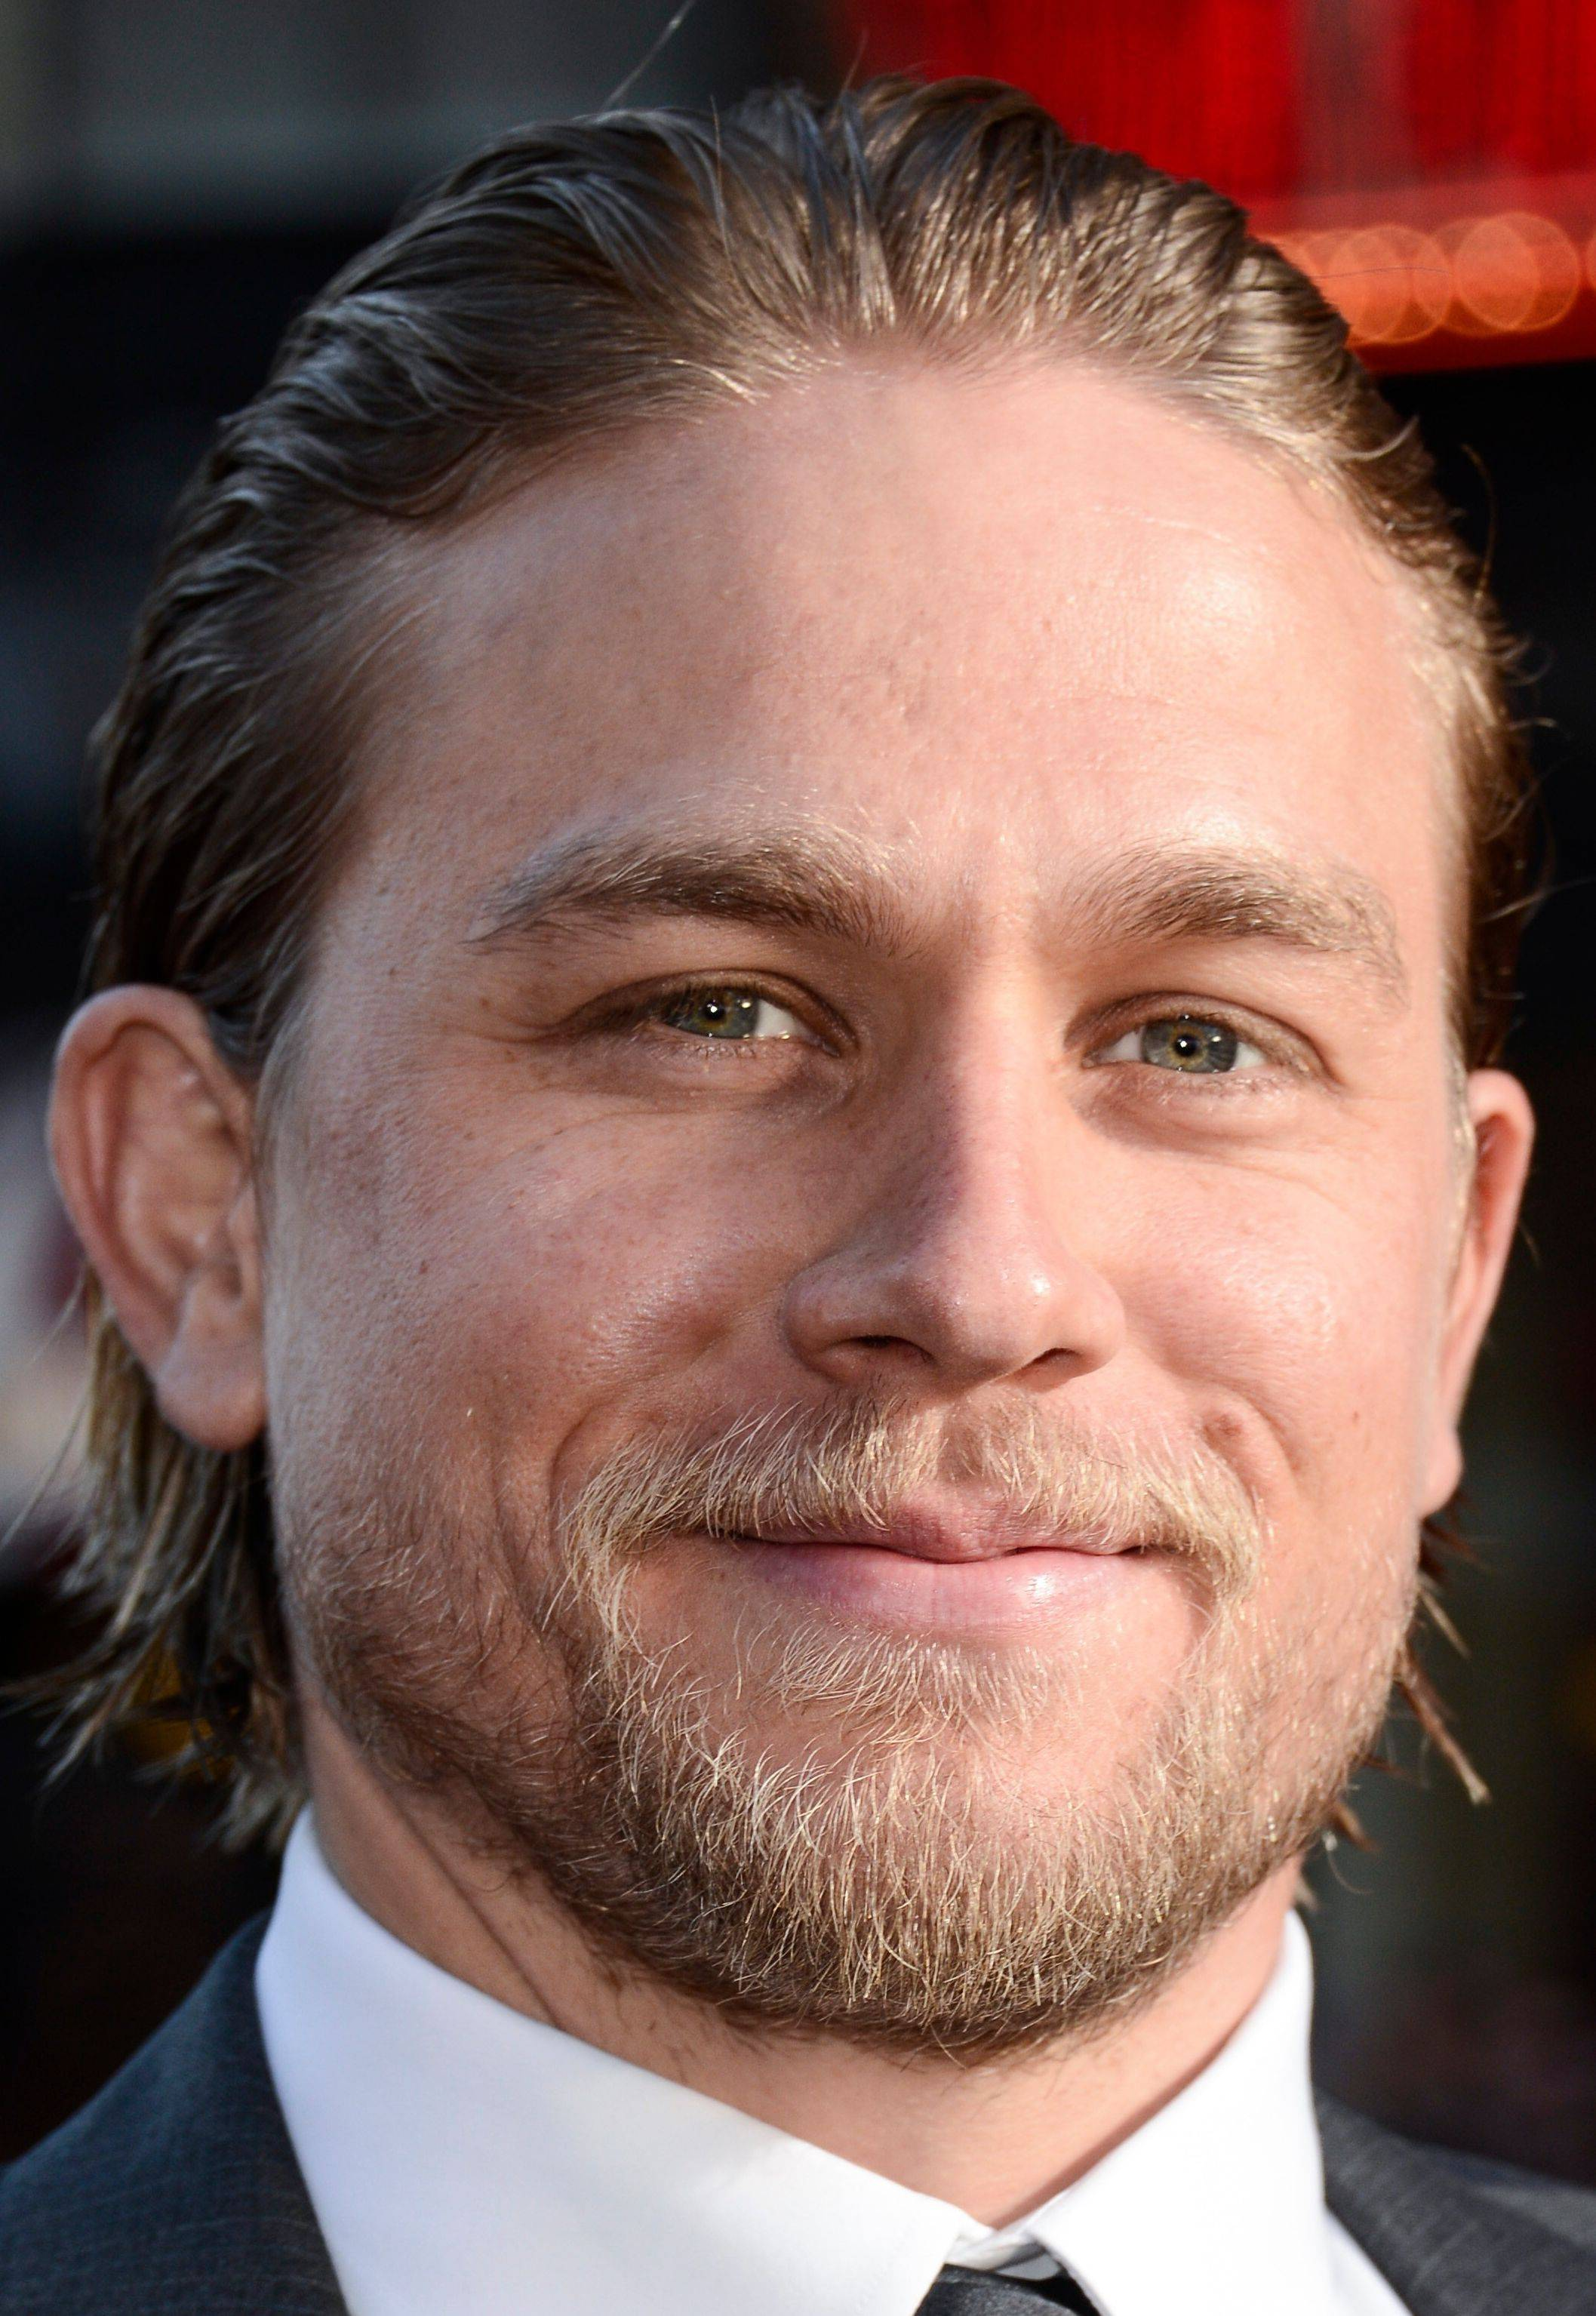 �Sons of Anarchy� star Charlie Hunnam has dropped out of the �Fifty Shades of Grey� film adaptation citing scheduling conflicts.